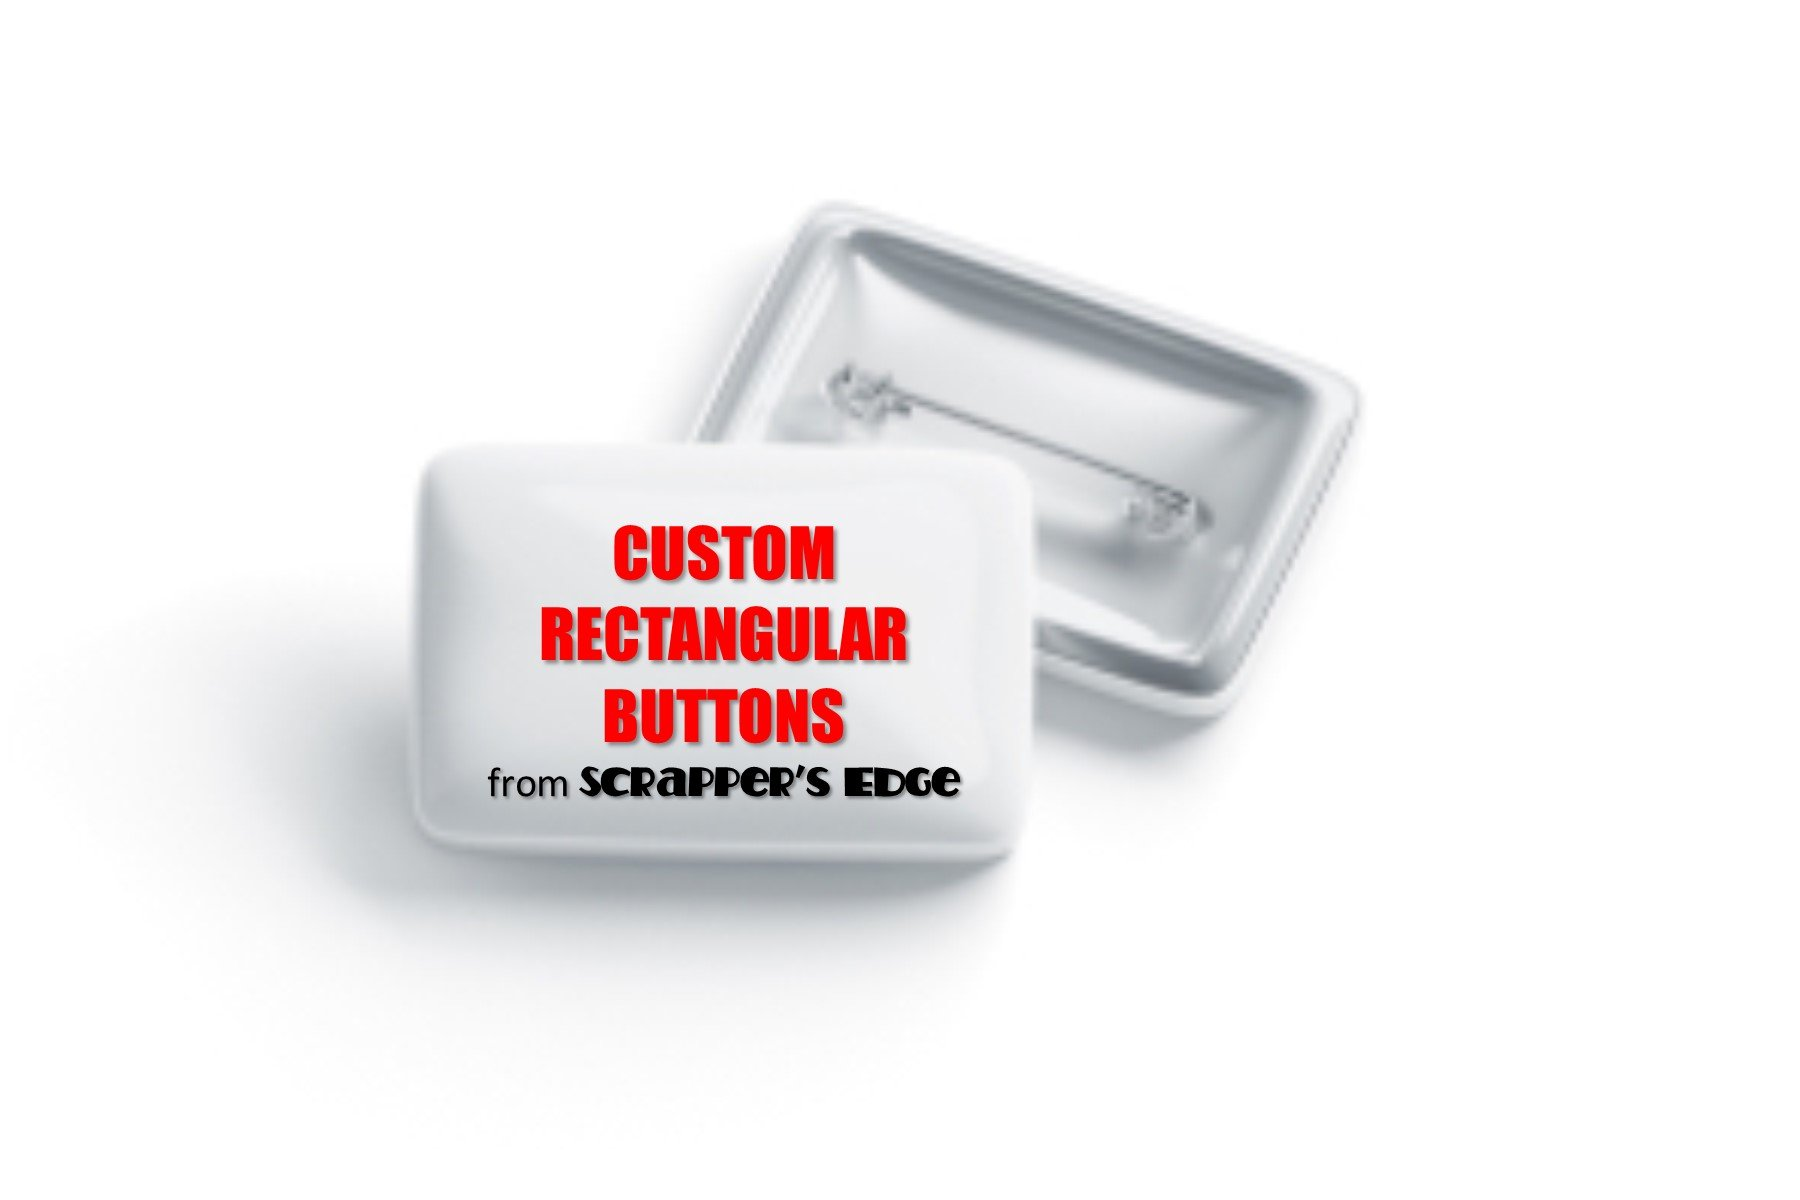 3x2 CUSTOM BUTTON